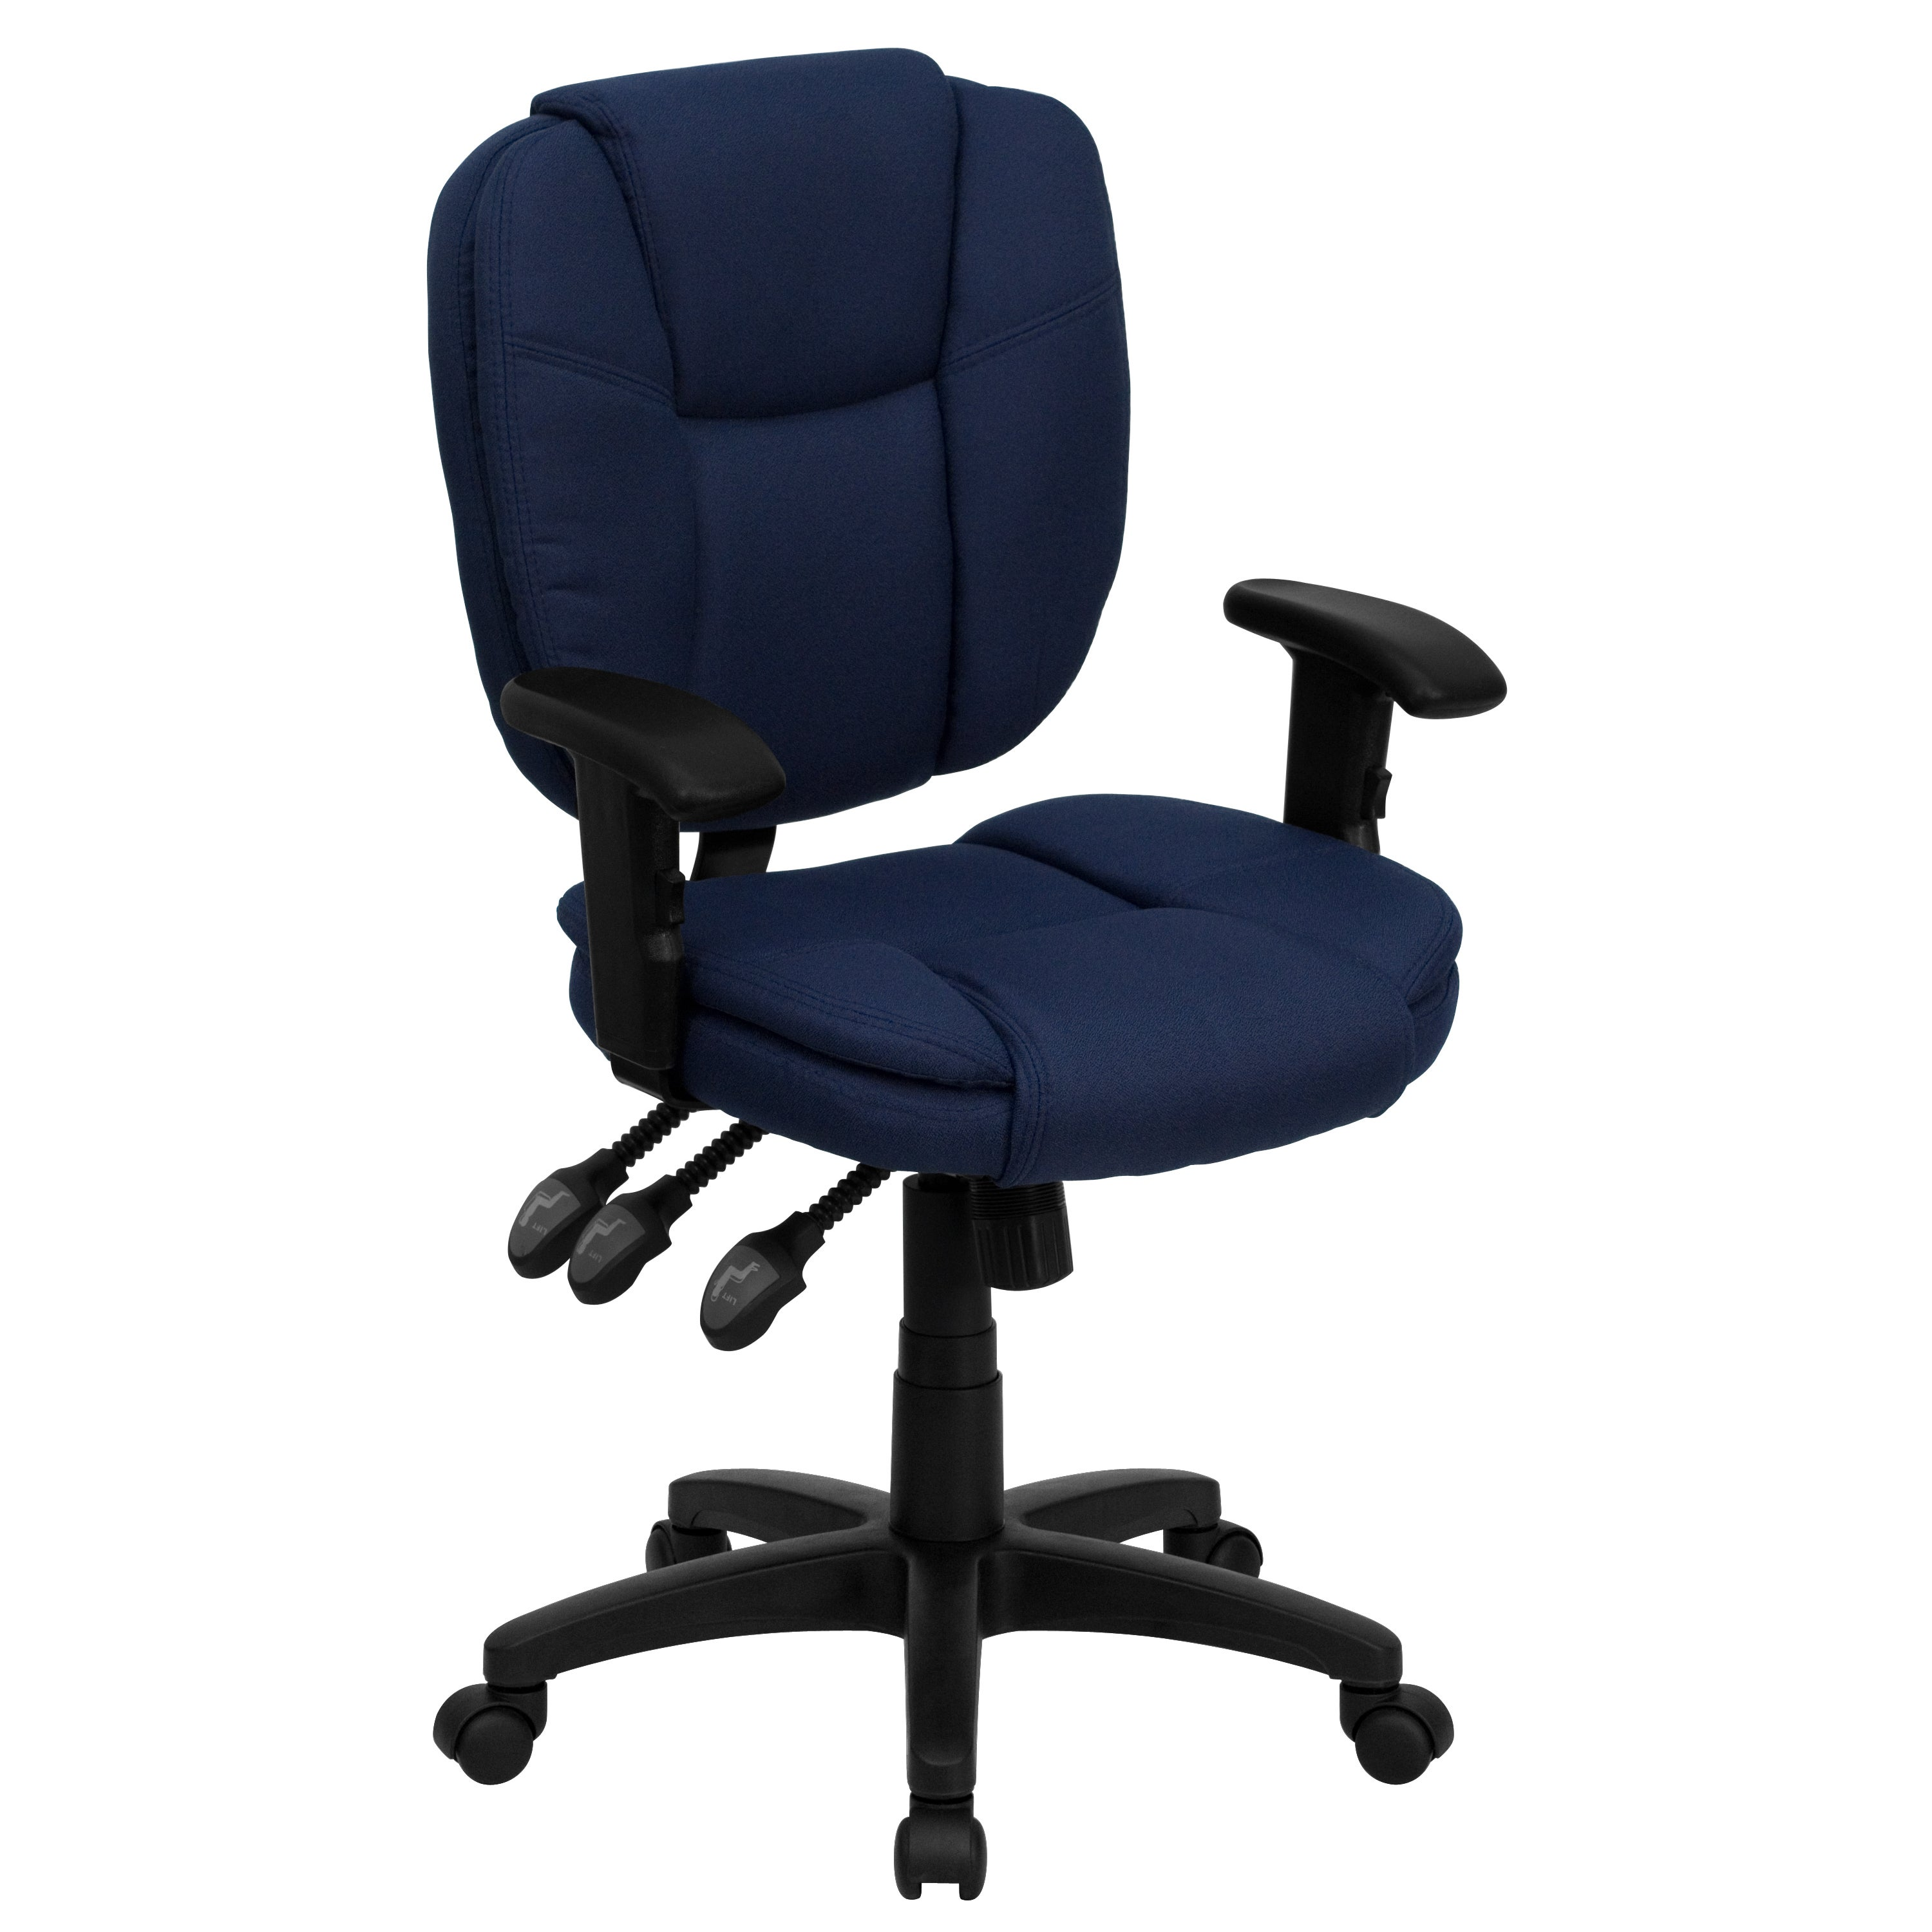 Cornel Navy Blue Fabric Swivel Office Chair (1 Chair)